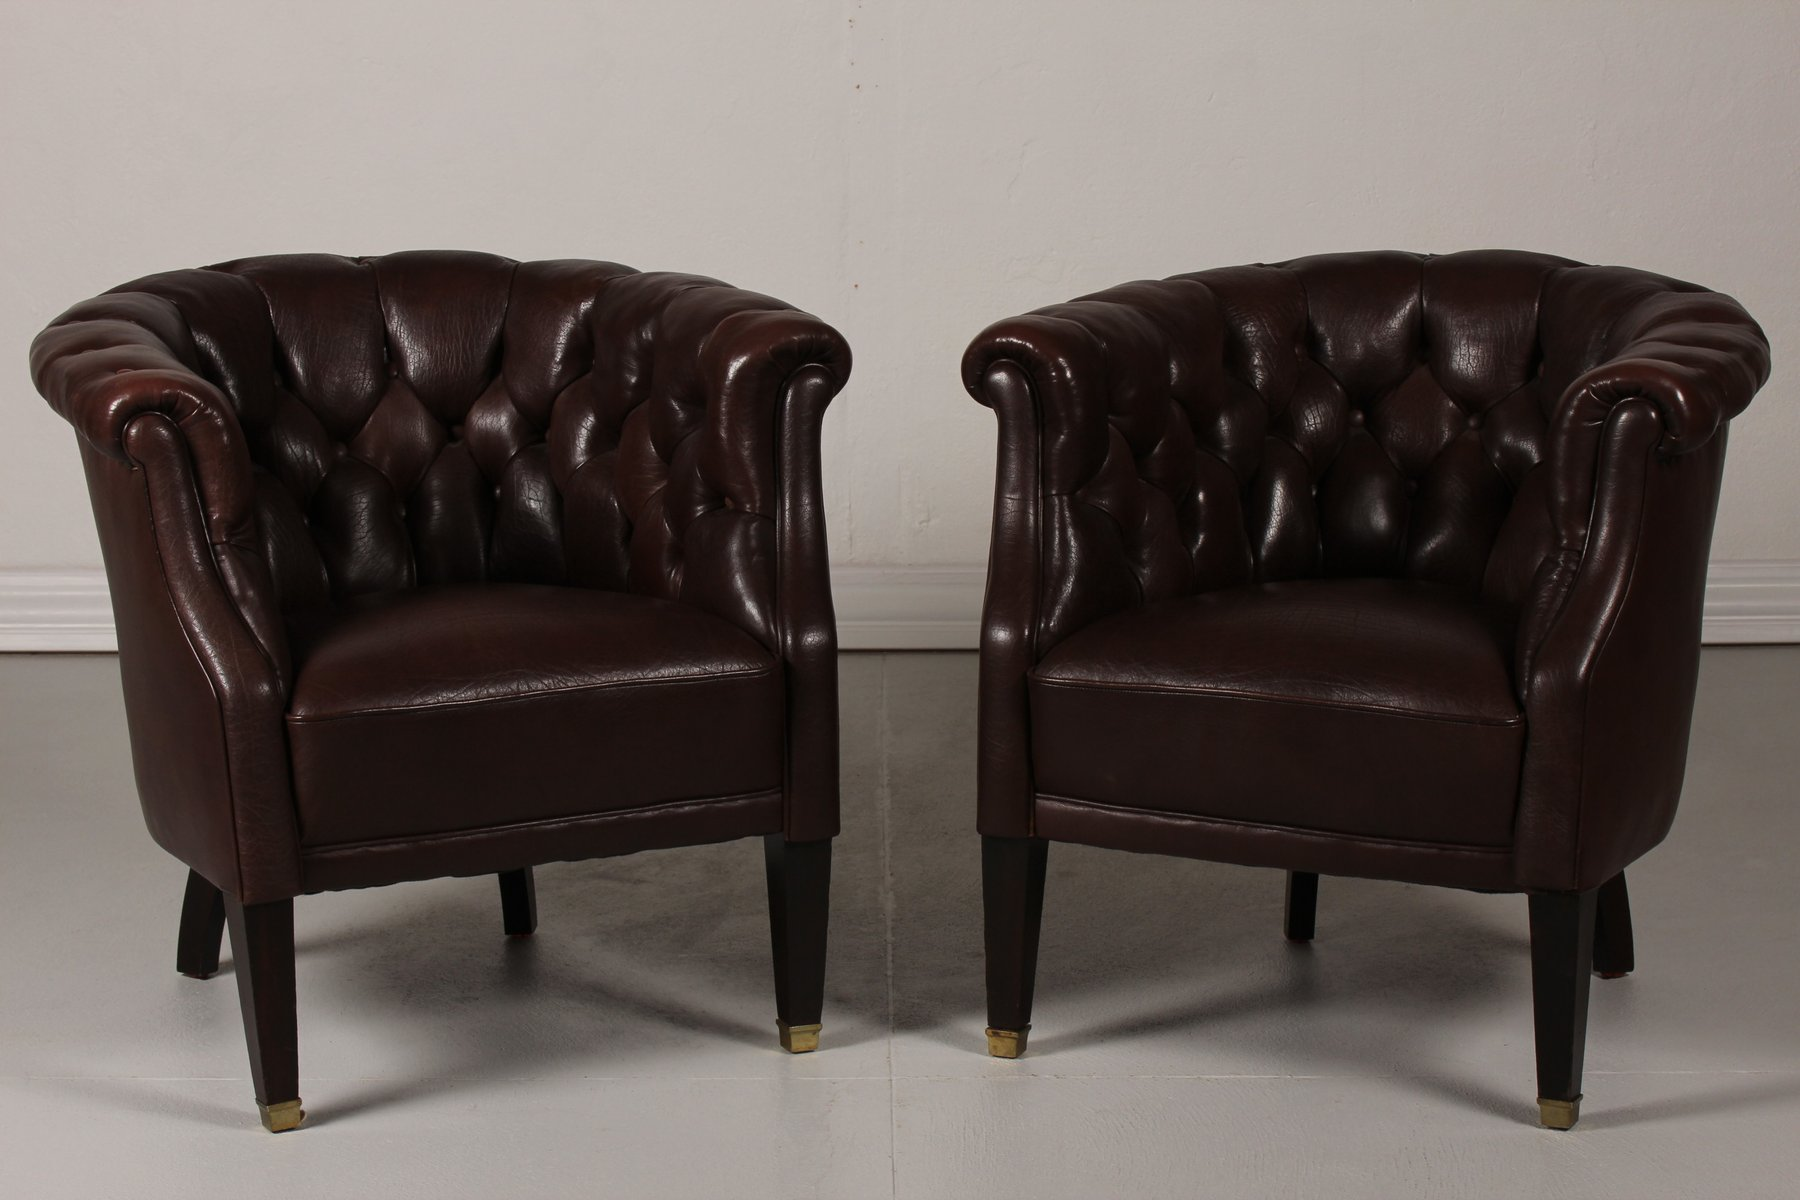 Danish Chesterfield Dark Brown Leather Armchairs, 1920s, Set Of 2